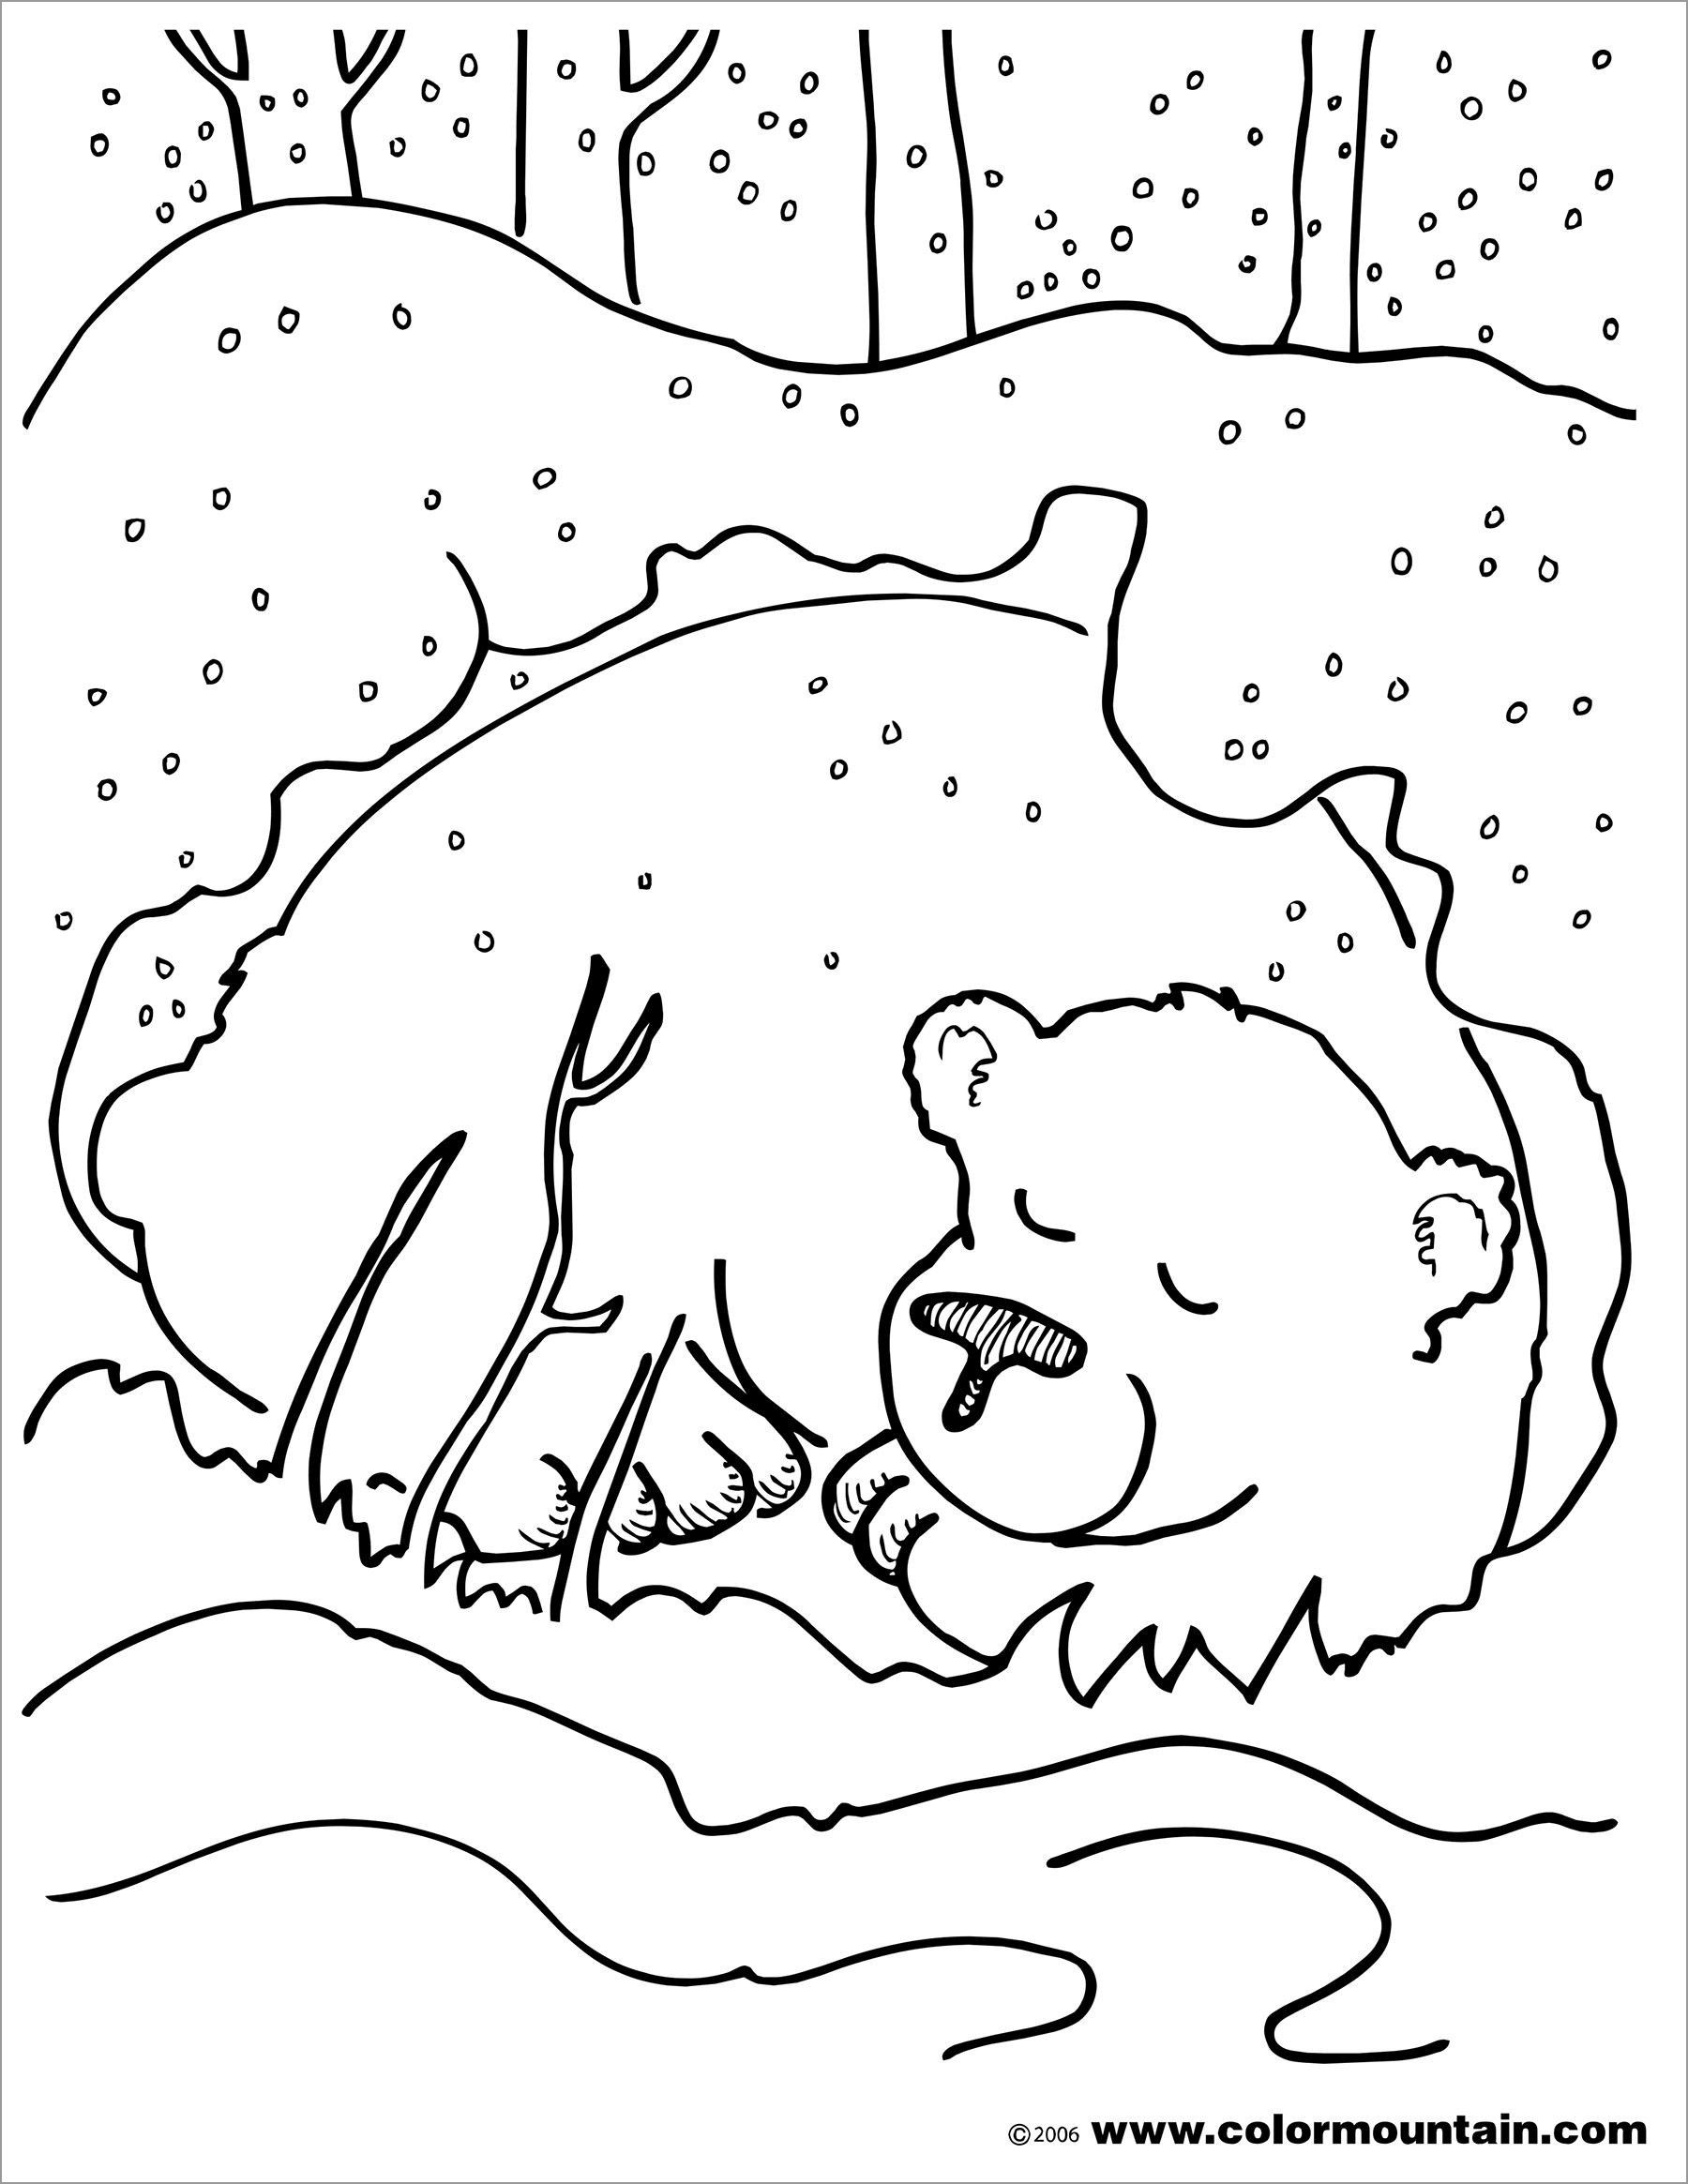 Bear Cave Coloring Page Bear Coloring Pages Coloring Pages Winter Animal Coloring Pages